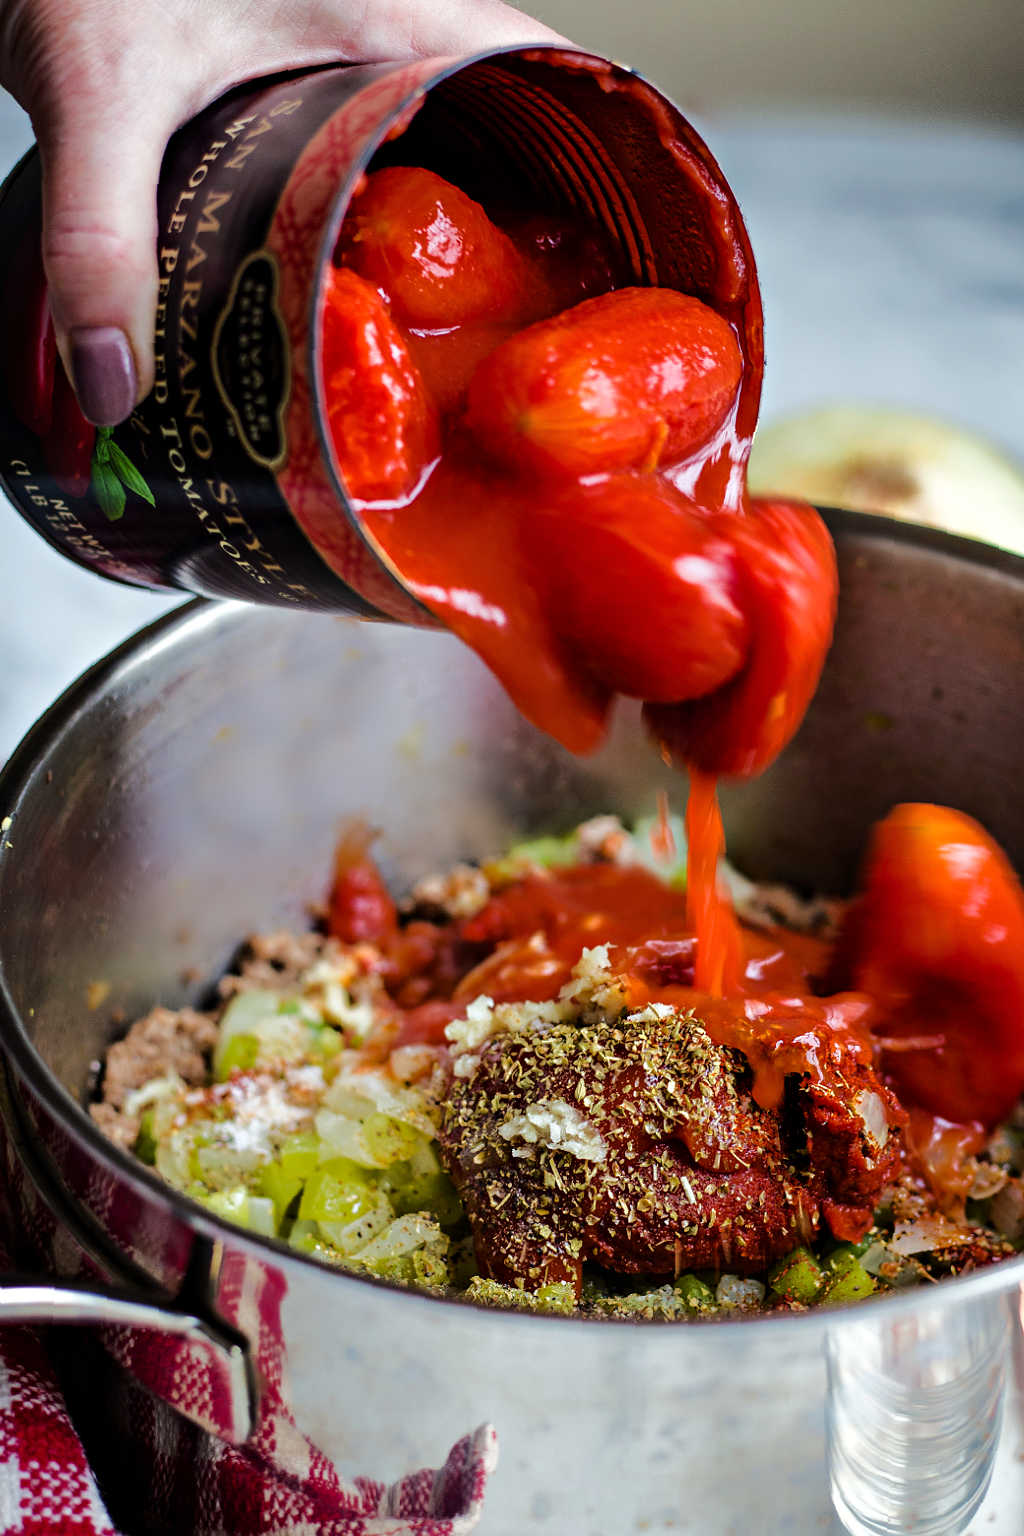 Adding a can of whole tomatoes to a pot of spaghetti sauce.